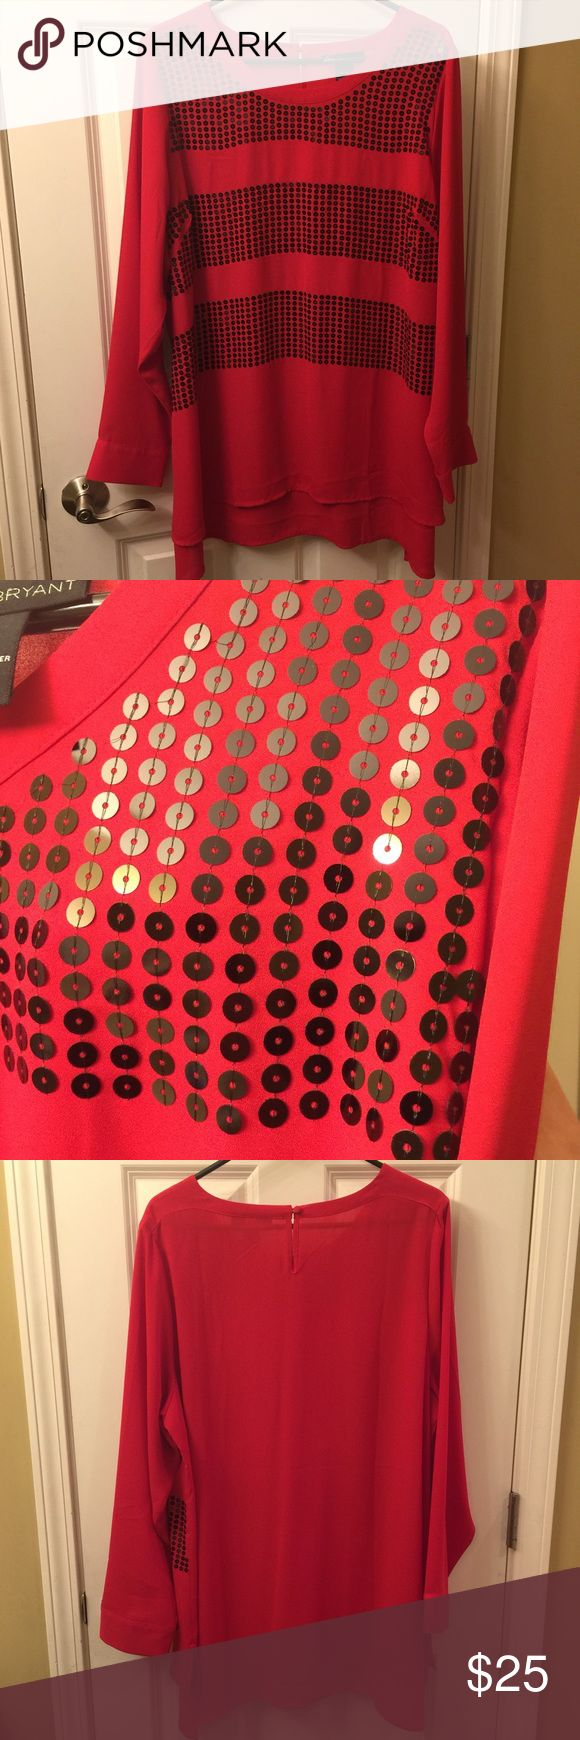 Lane Bryant Christmas Party Ready Red Tunic Top This red tunic top is ready to deck the halls!  The sequins give you a dash of sparkle to help you liven up the party!  It is 100% polyester.  The material has NO stretch to it. Lane Bryant Tops Tunics